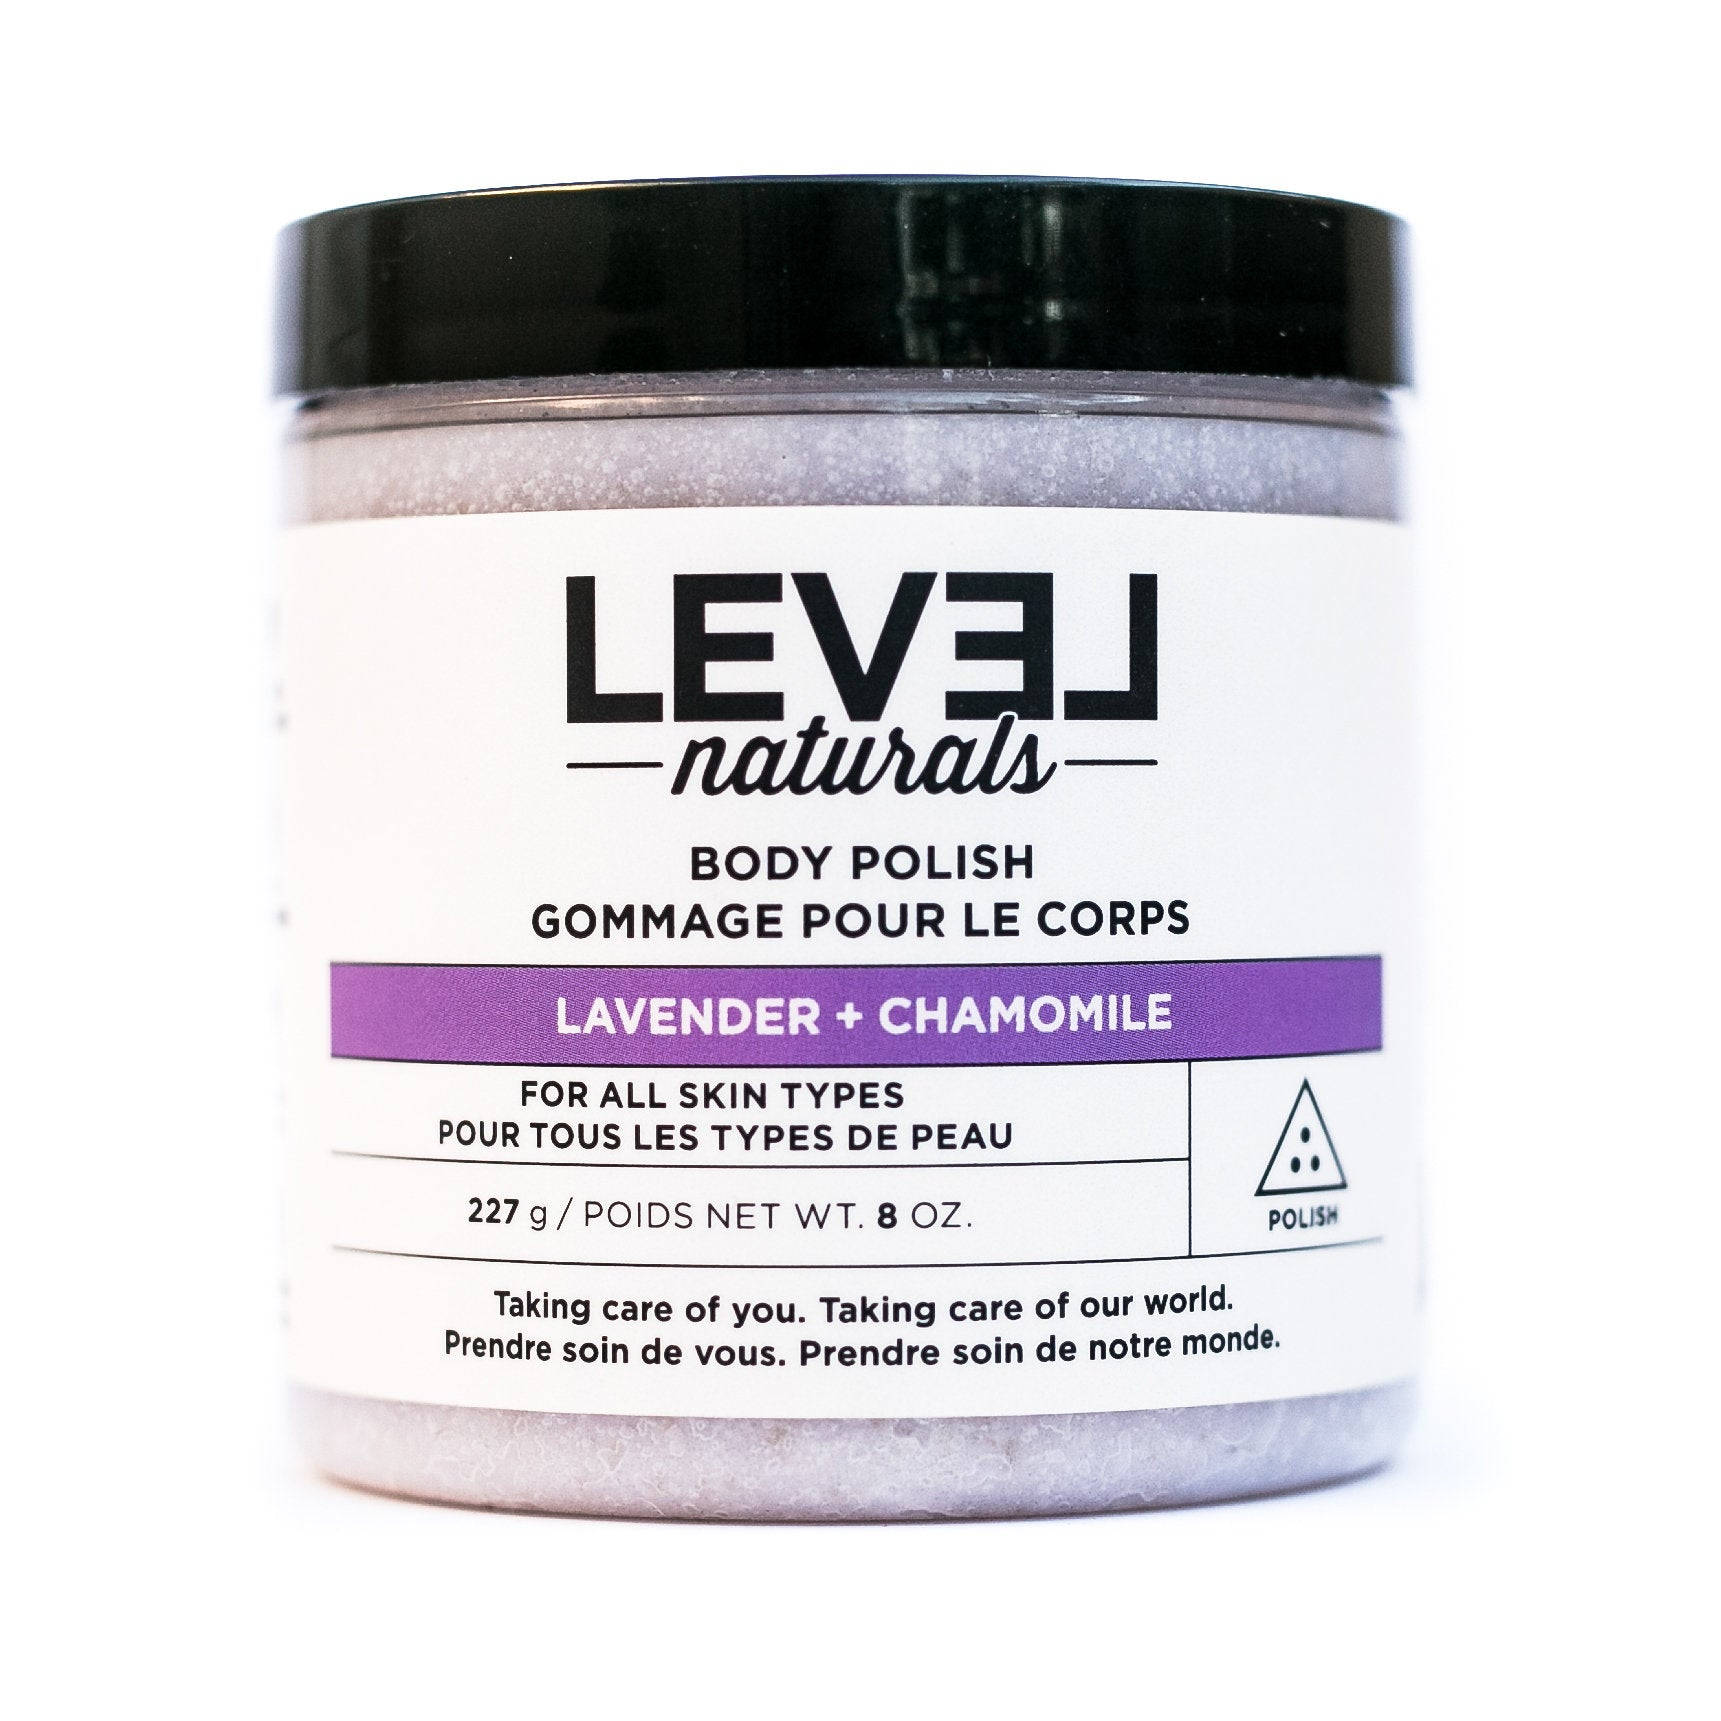 Lavender + Chamomile Body Polish